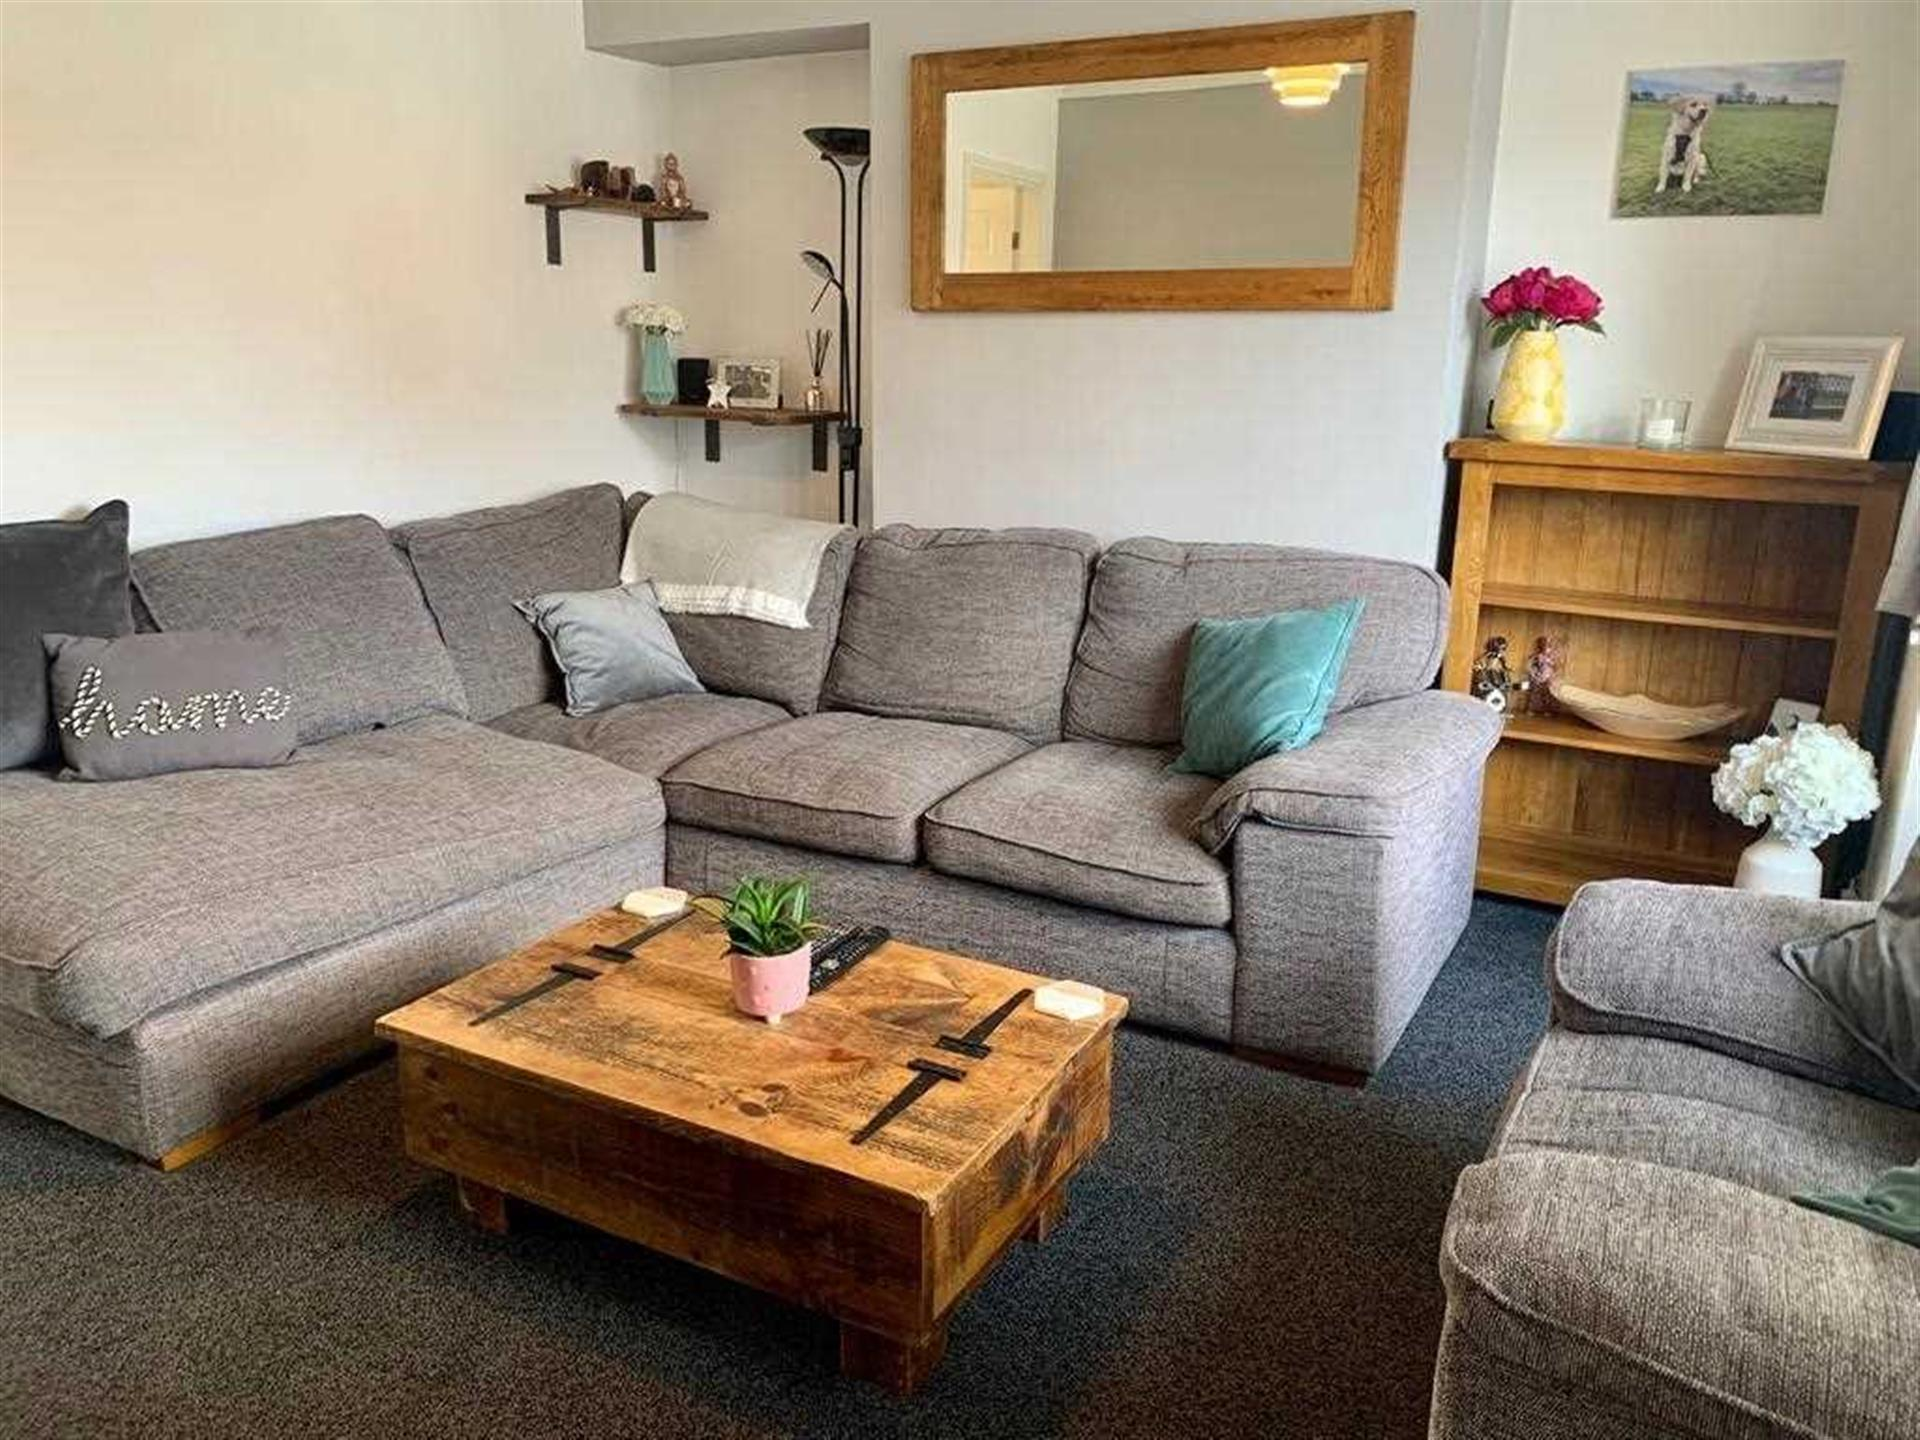 2 Bedroom Semi-detached House For Sale - Lounge Area